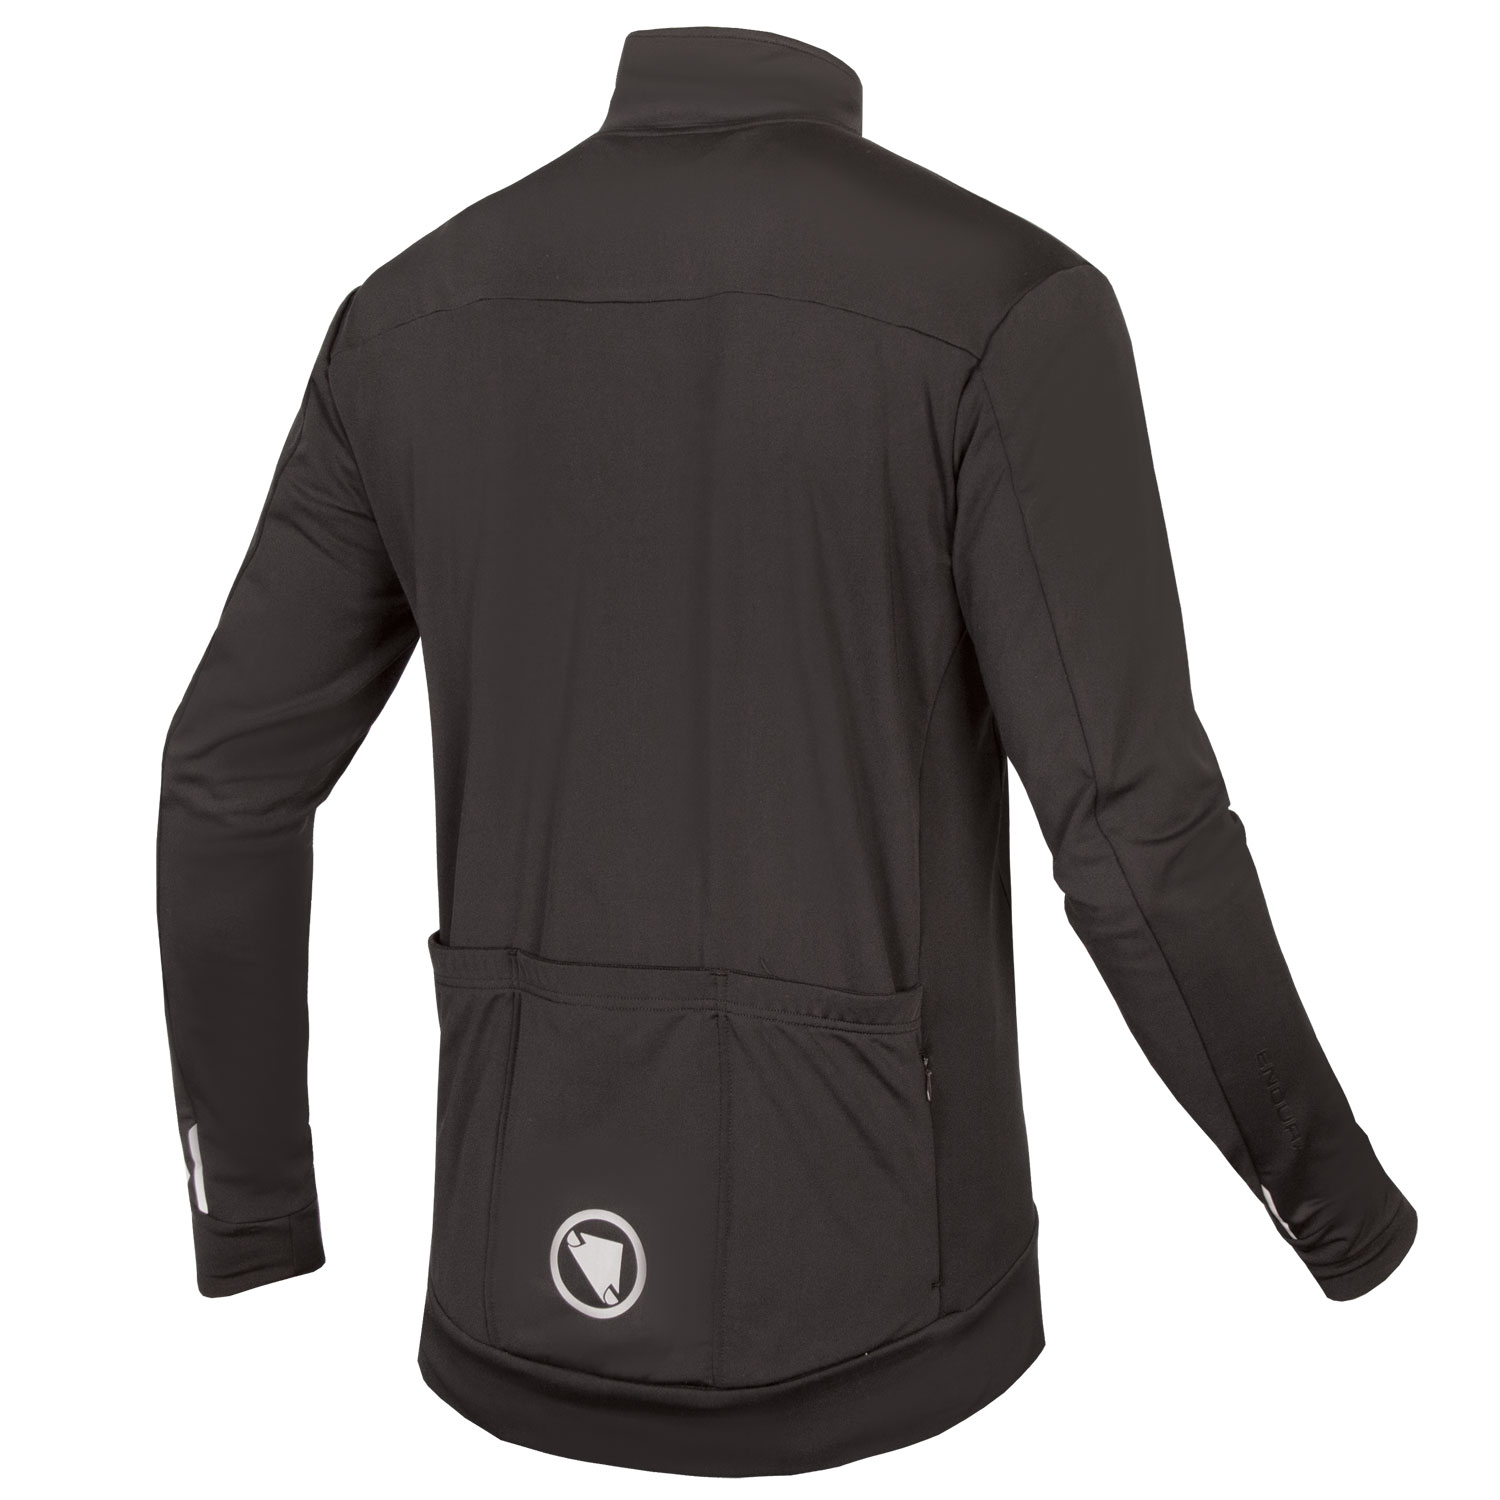 Xtract Roubaix L/S Jersey back